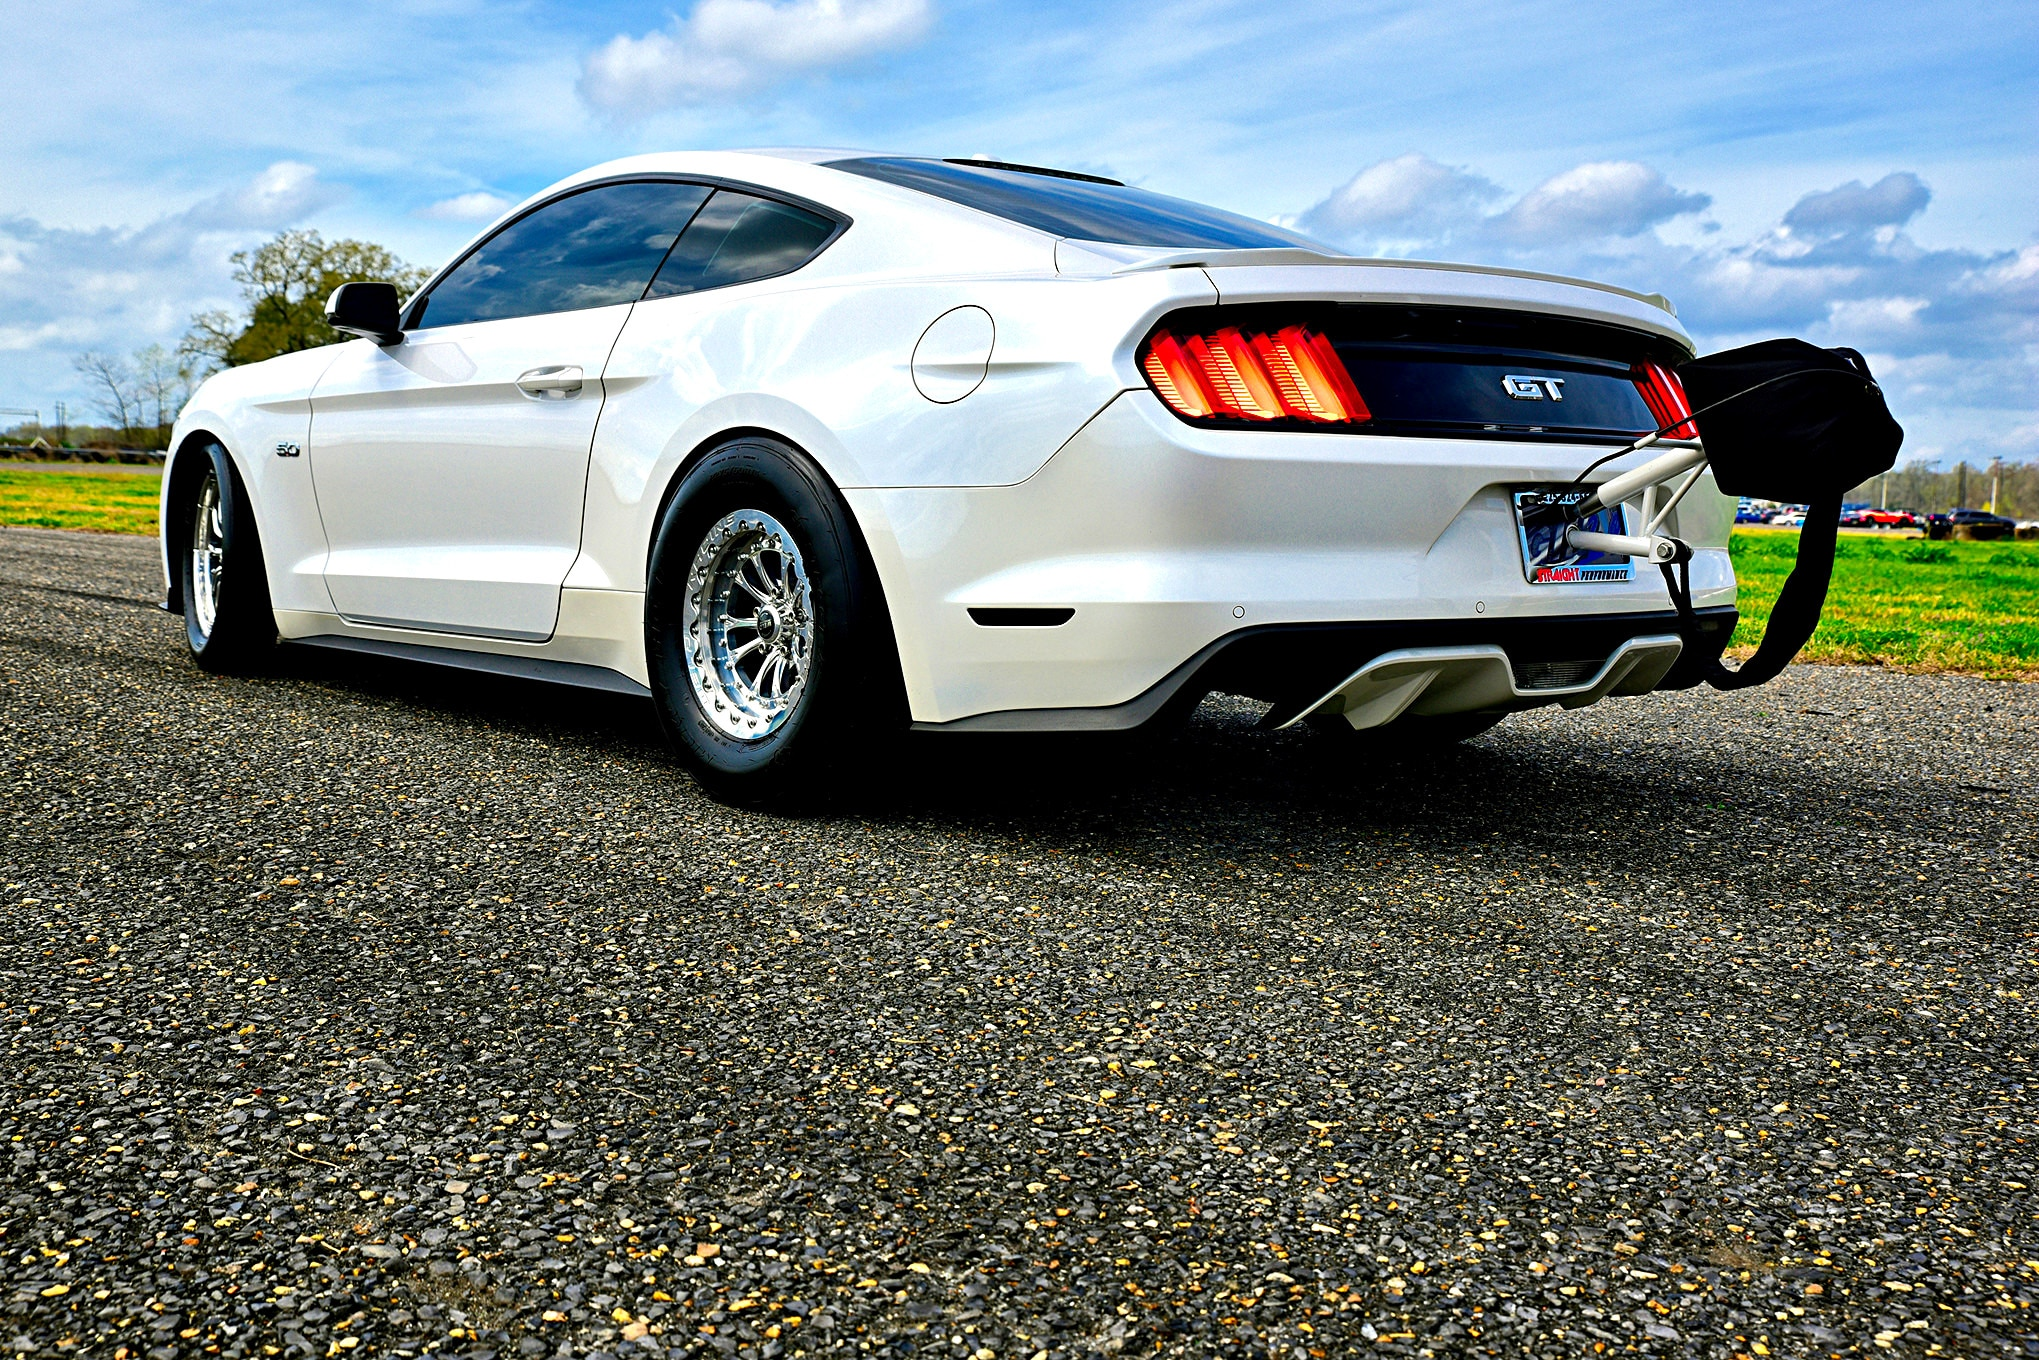 Sheldon Lewis S550 Ford Mustang 023